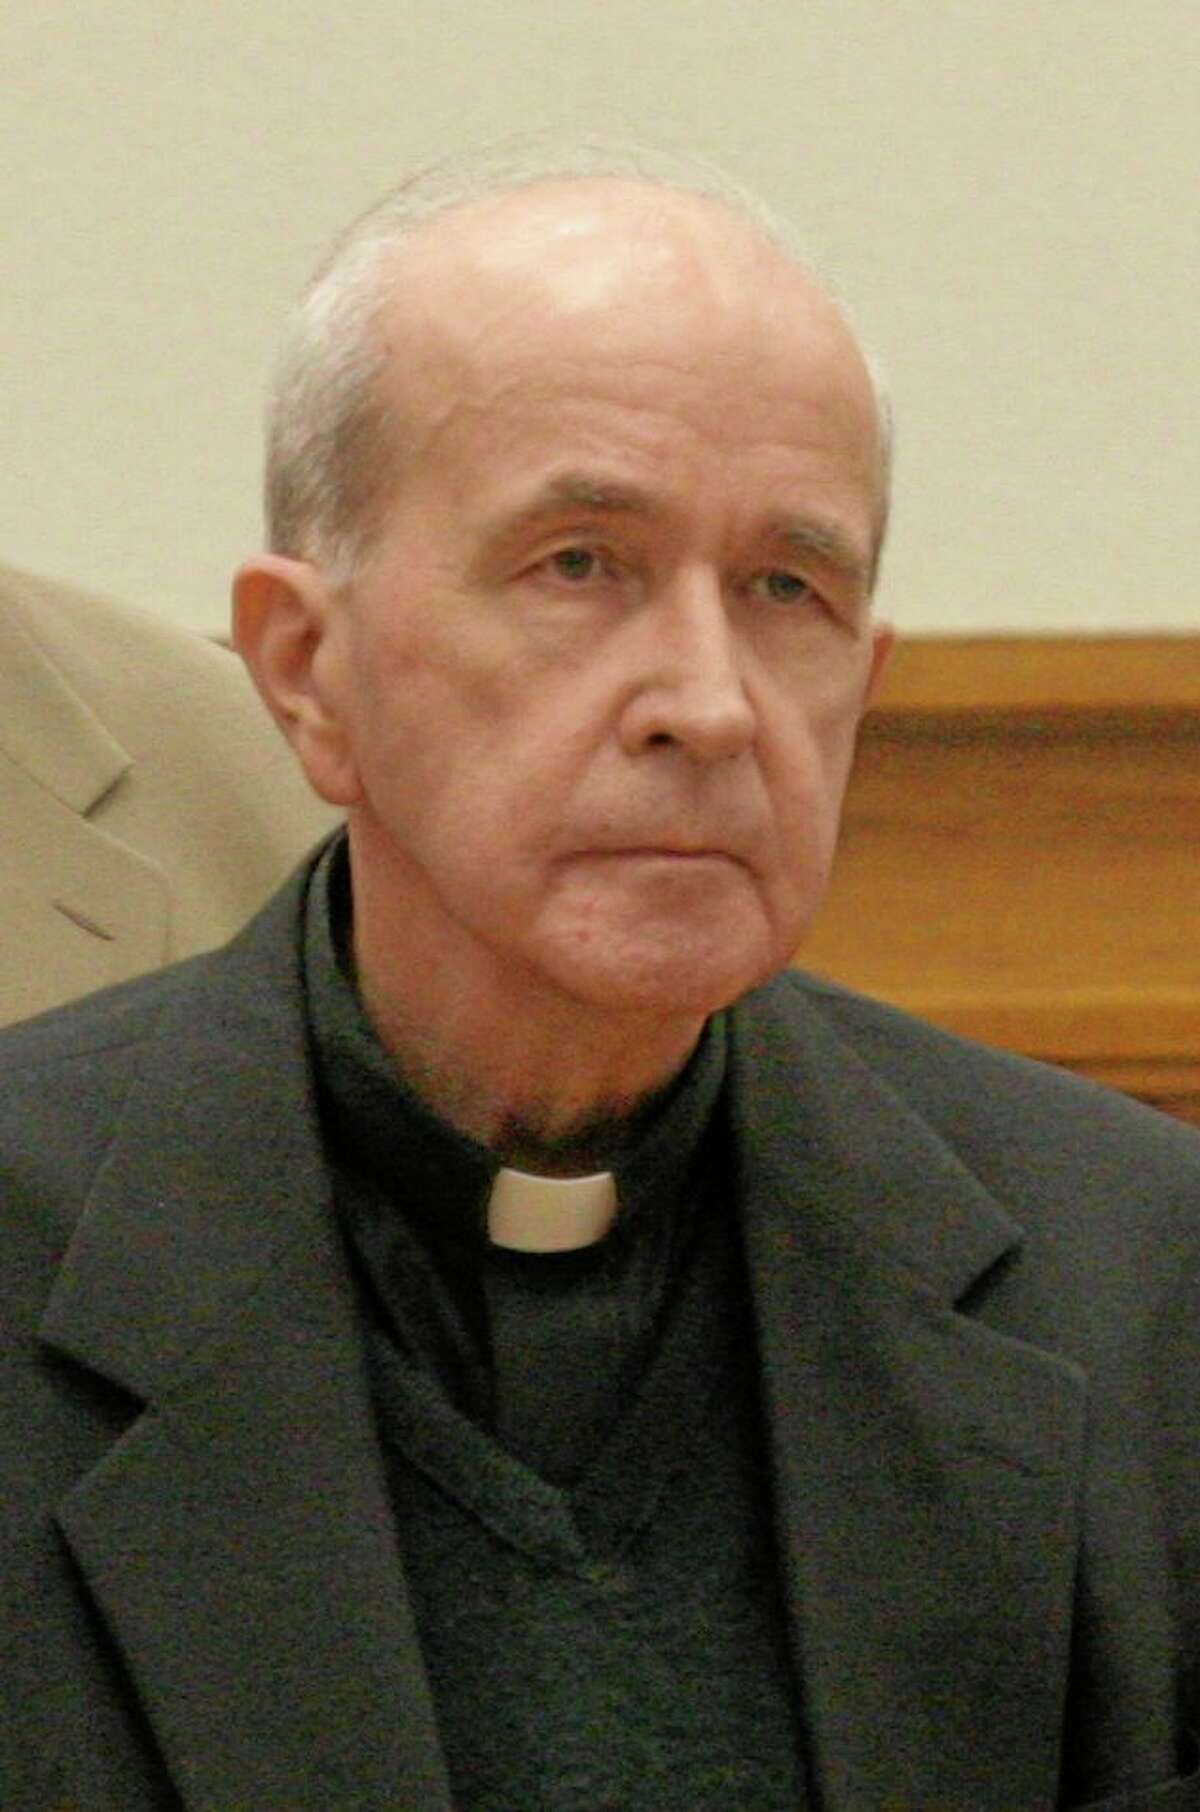 FILE - In this photo made Thursday, May 11, 2006, in Toledo, Ohio, the Rev. Gerald Robinson listens as the verdict is read finding him guilty of killing Sister Margaret Ann Pahl. Robinson, a Roman Catholic priest, died Friday morning, July 4, 2014, at a Columbus prison hospice unit, said his attorney, Richard Kerger. He was 76. A federal court had refused Thursday to release Robinson so he could die in his hometown, Toledo. (AP Photo/Andy Morrison, Pool, File)